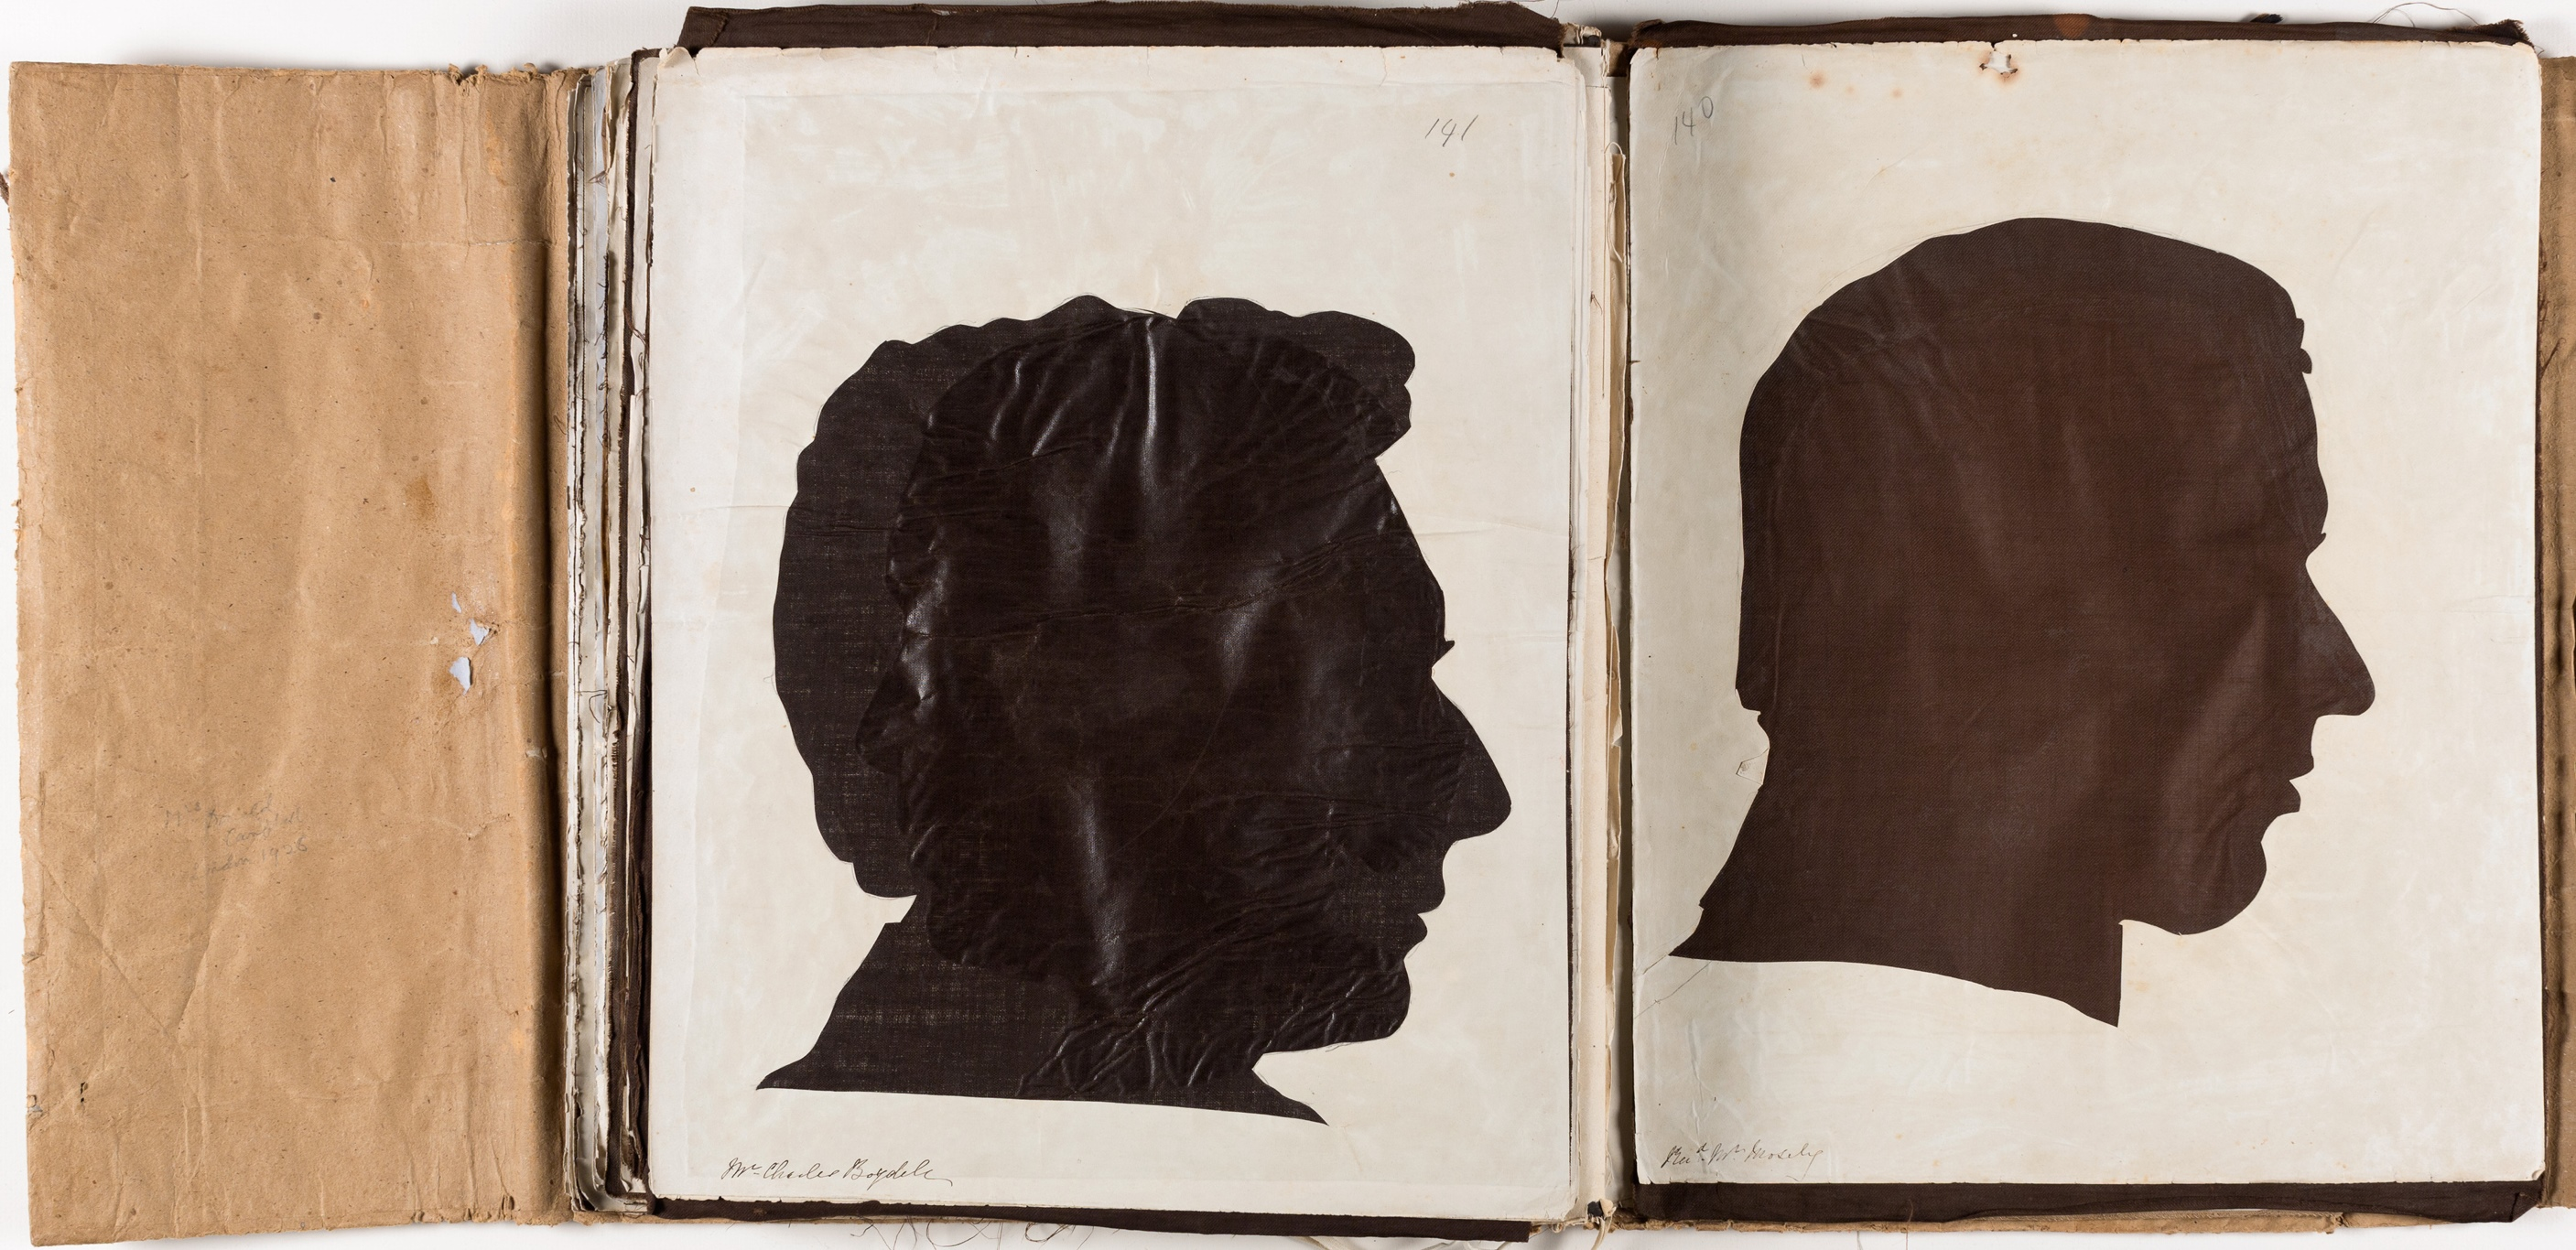 Silhouette likenesses of (left) Charles Boydell (1808-1869) and (right) Rev John Mosely (1829-1879) / by Marianne Collinson Close